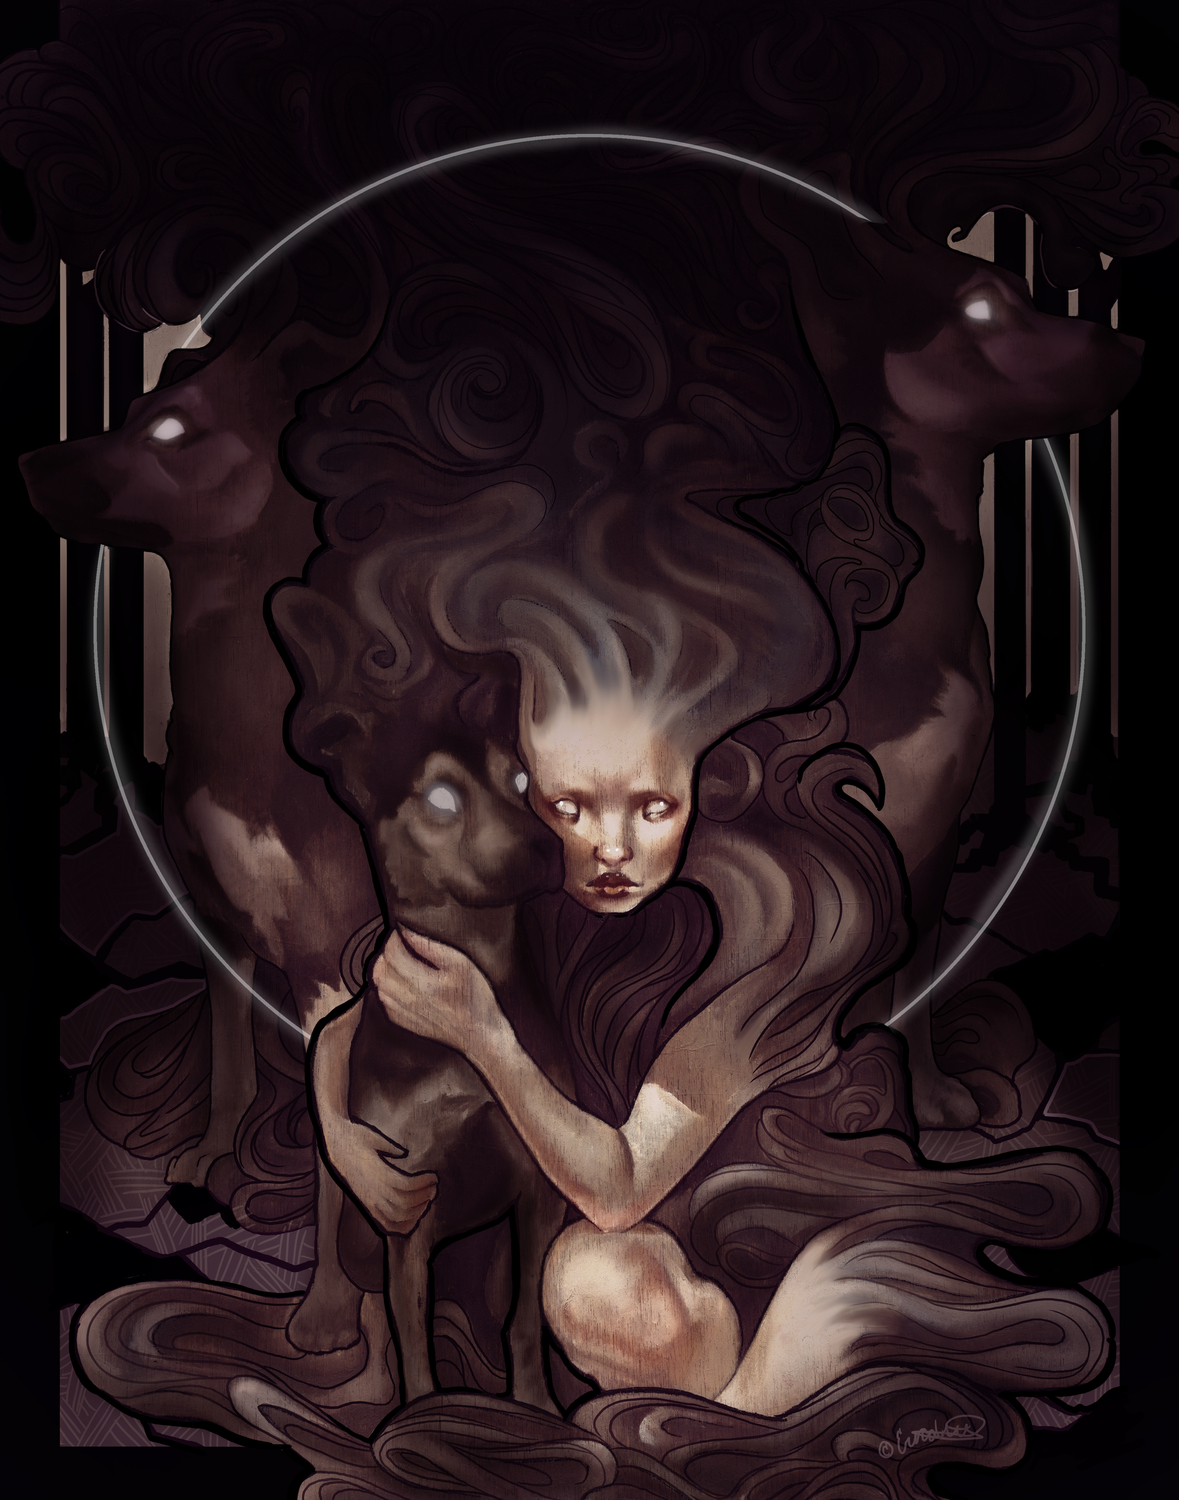 Keeper of the Hounds Artwork by Erica Willey